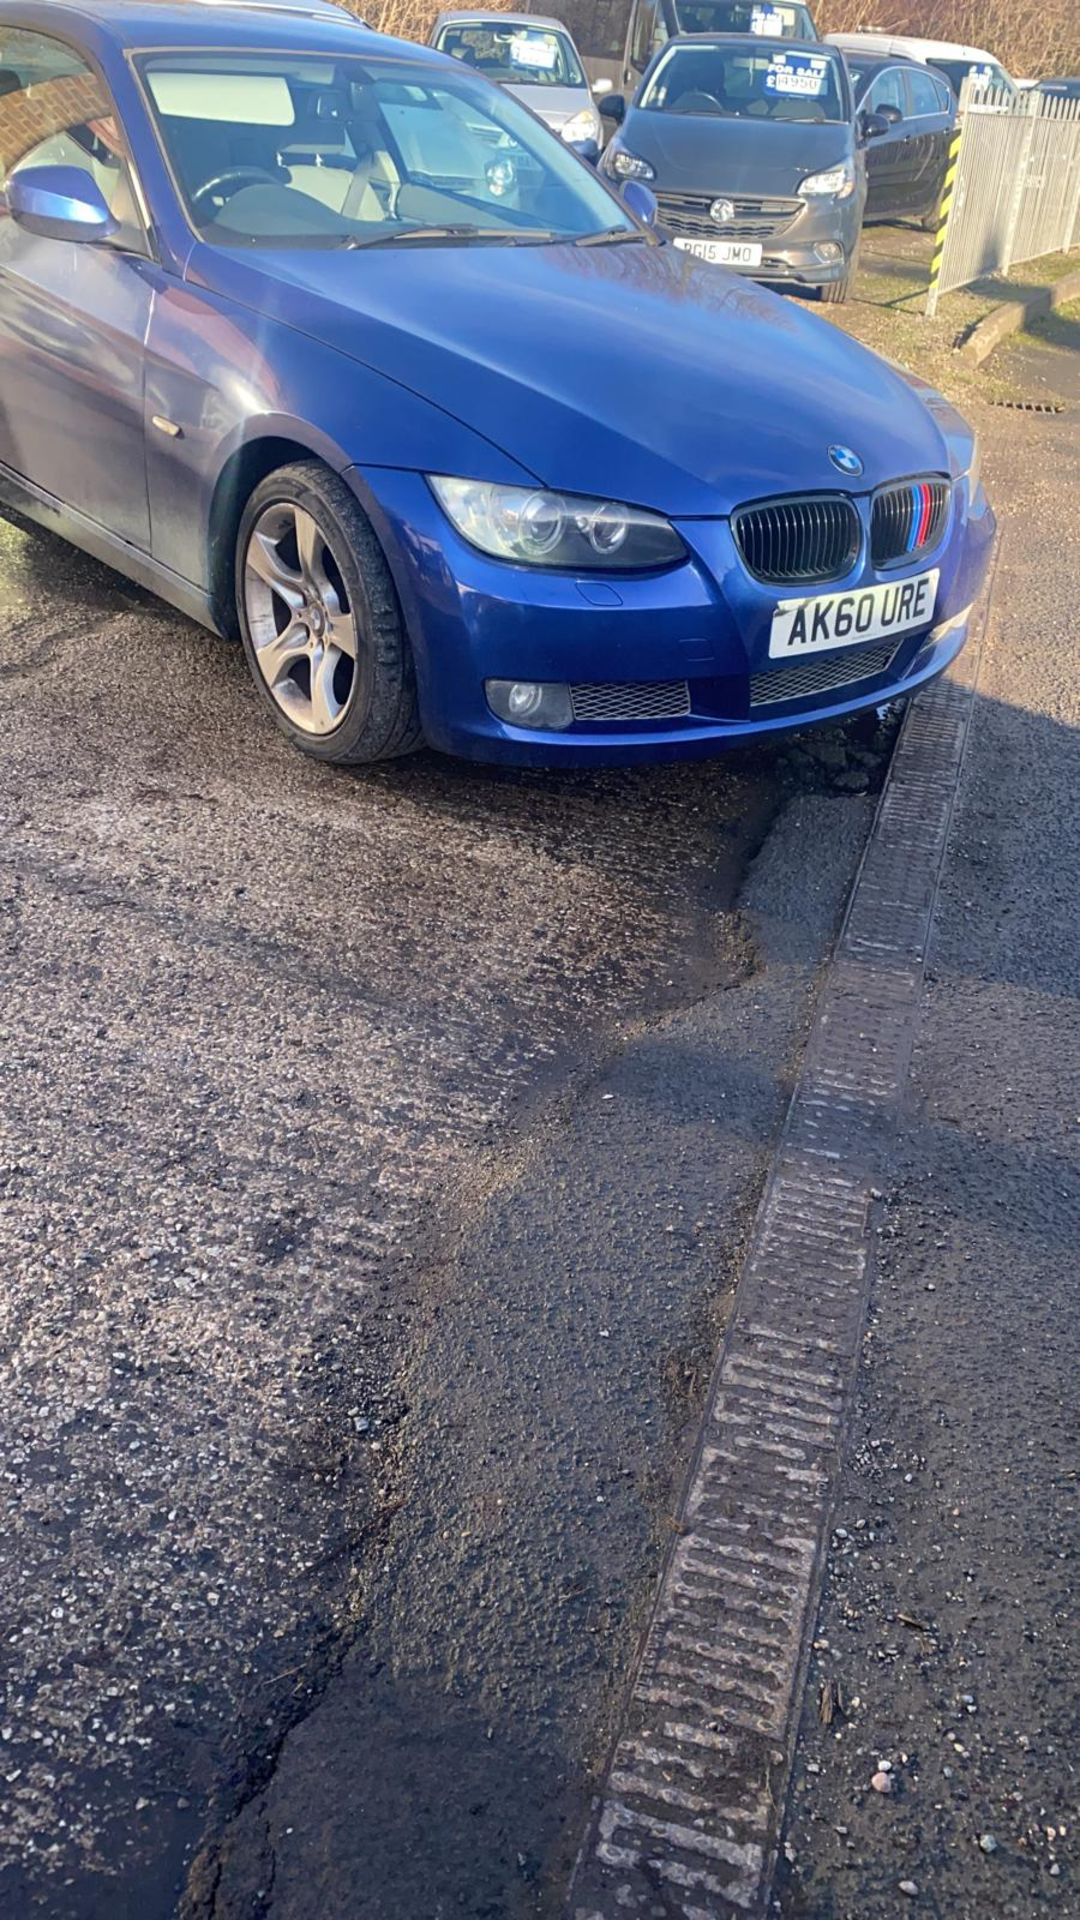 2010/60 REG BMW 320D SE AUTOMATIC 2.0 DIESEL BLUE COUPE 180 BHP *NO VAT* - Image 4 of 10